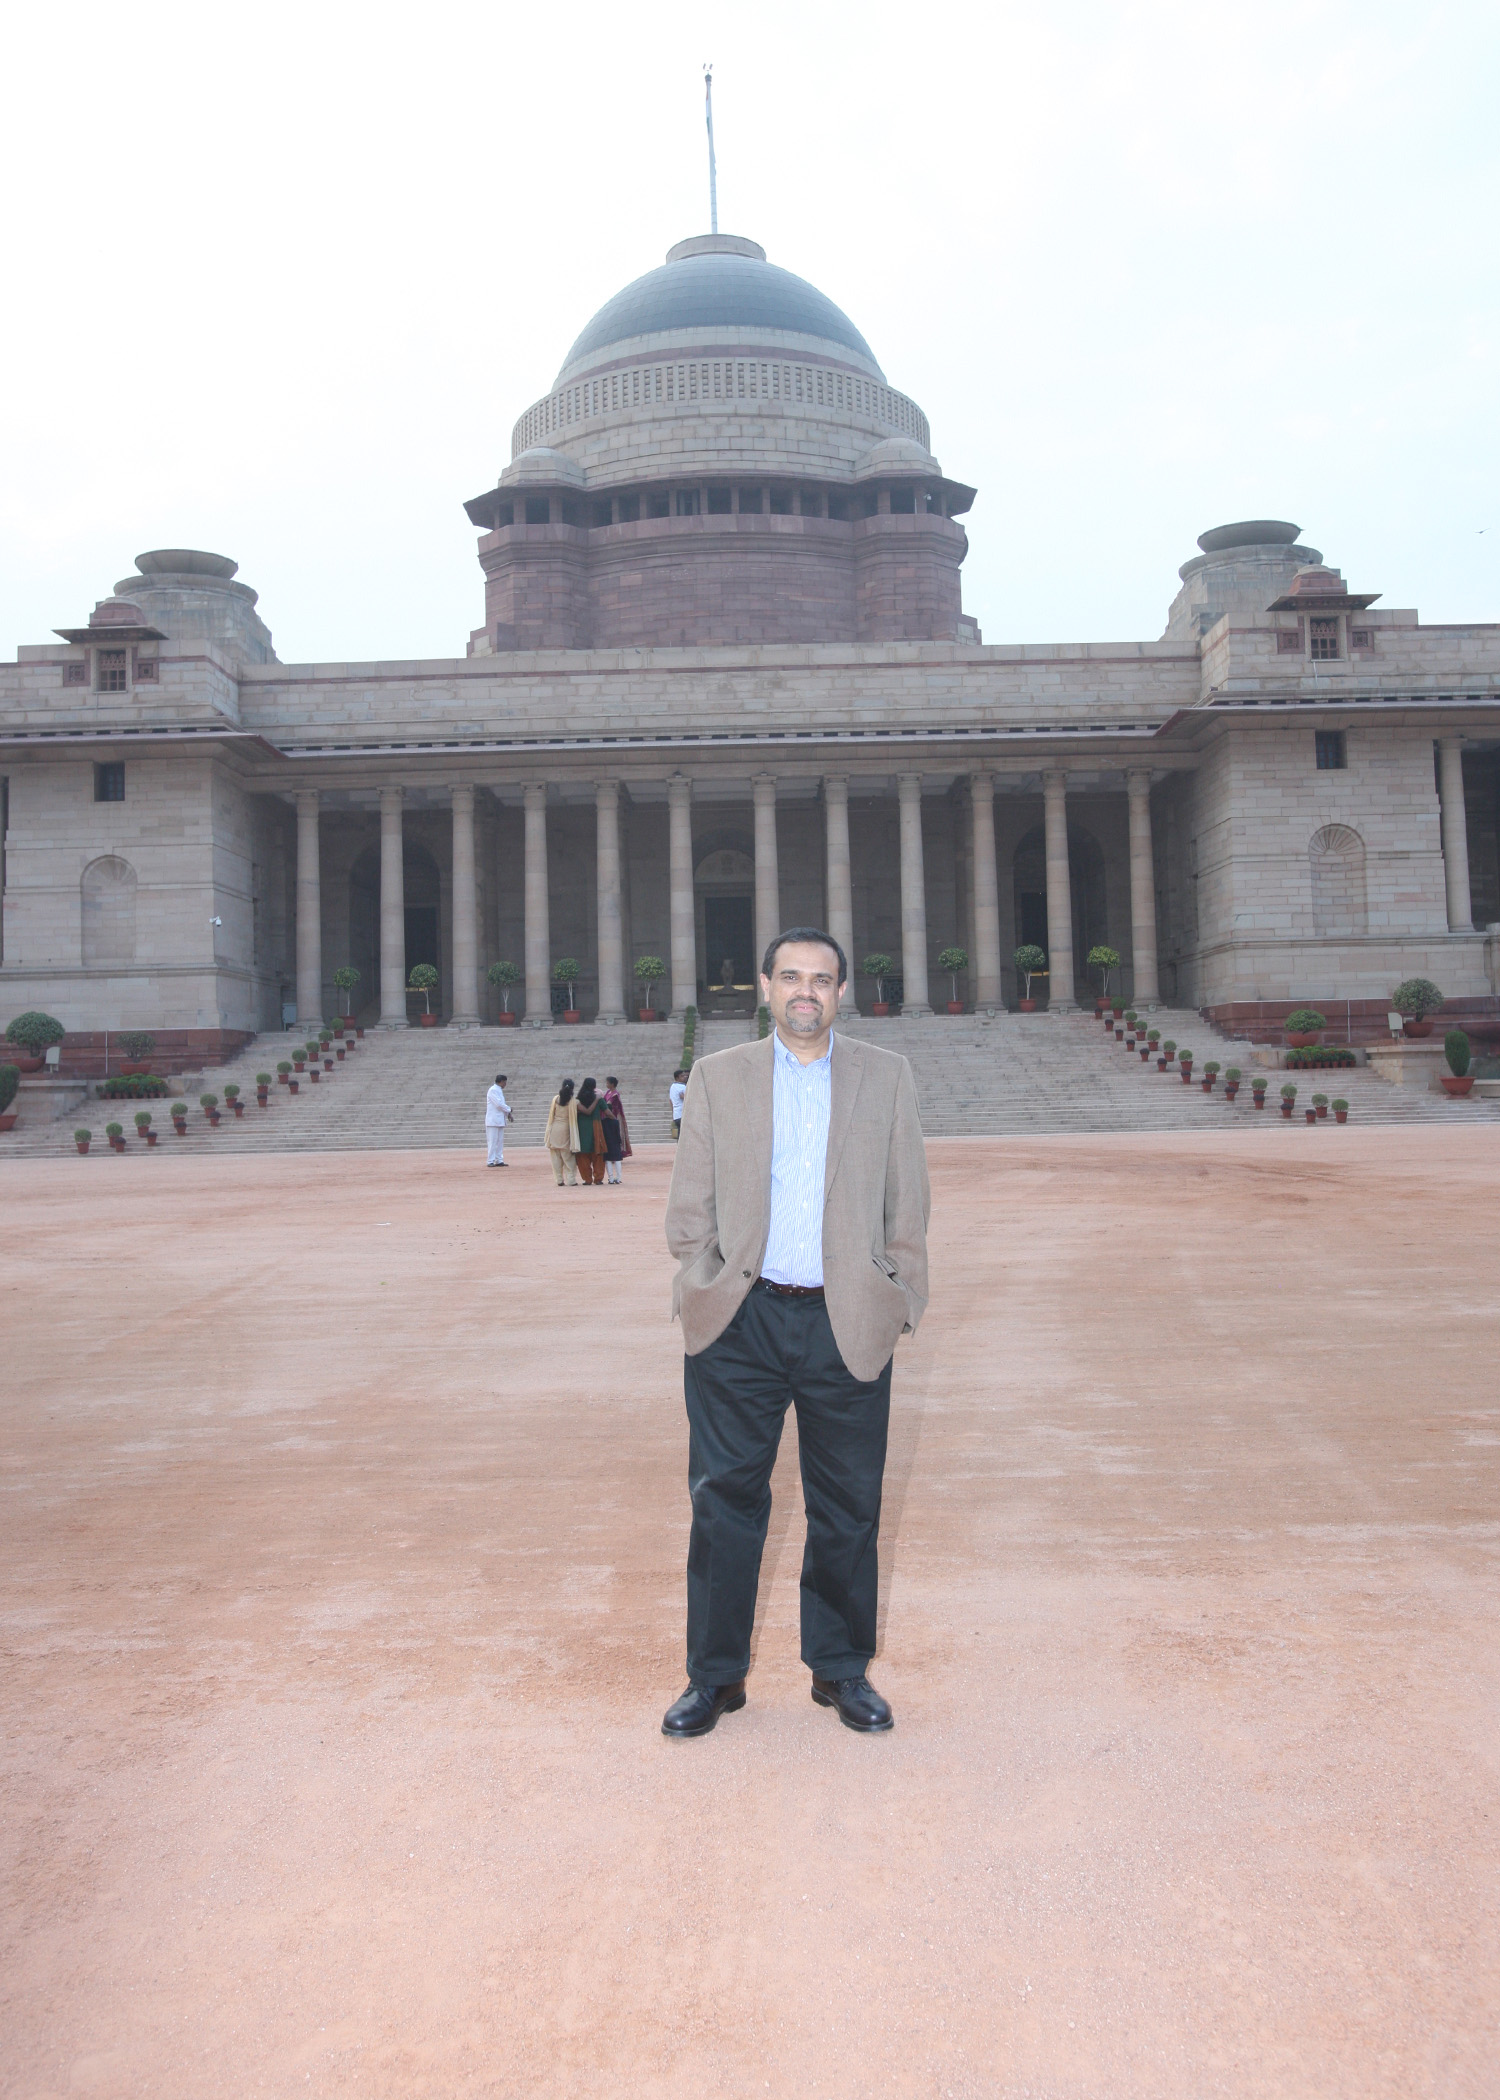 In Front of the Rashtrapati Bhavan